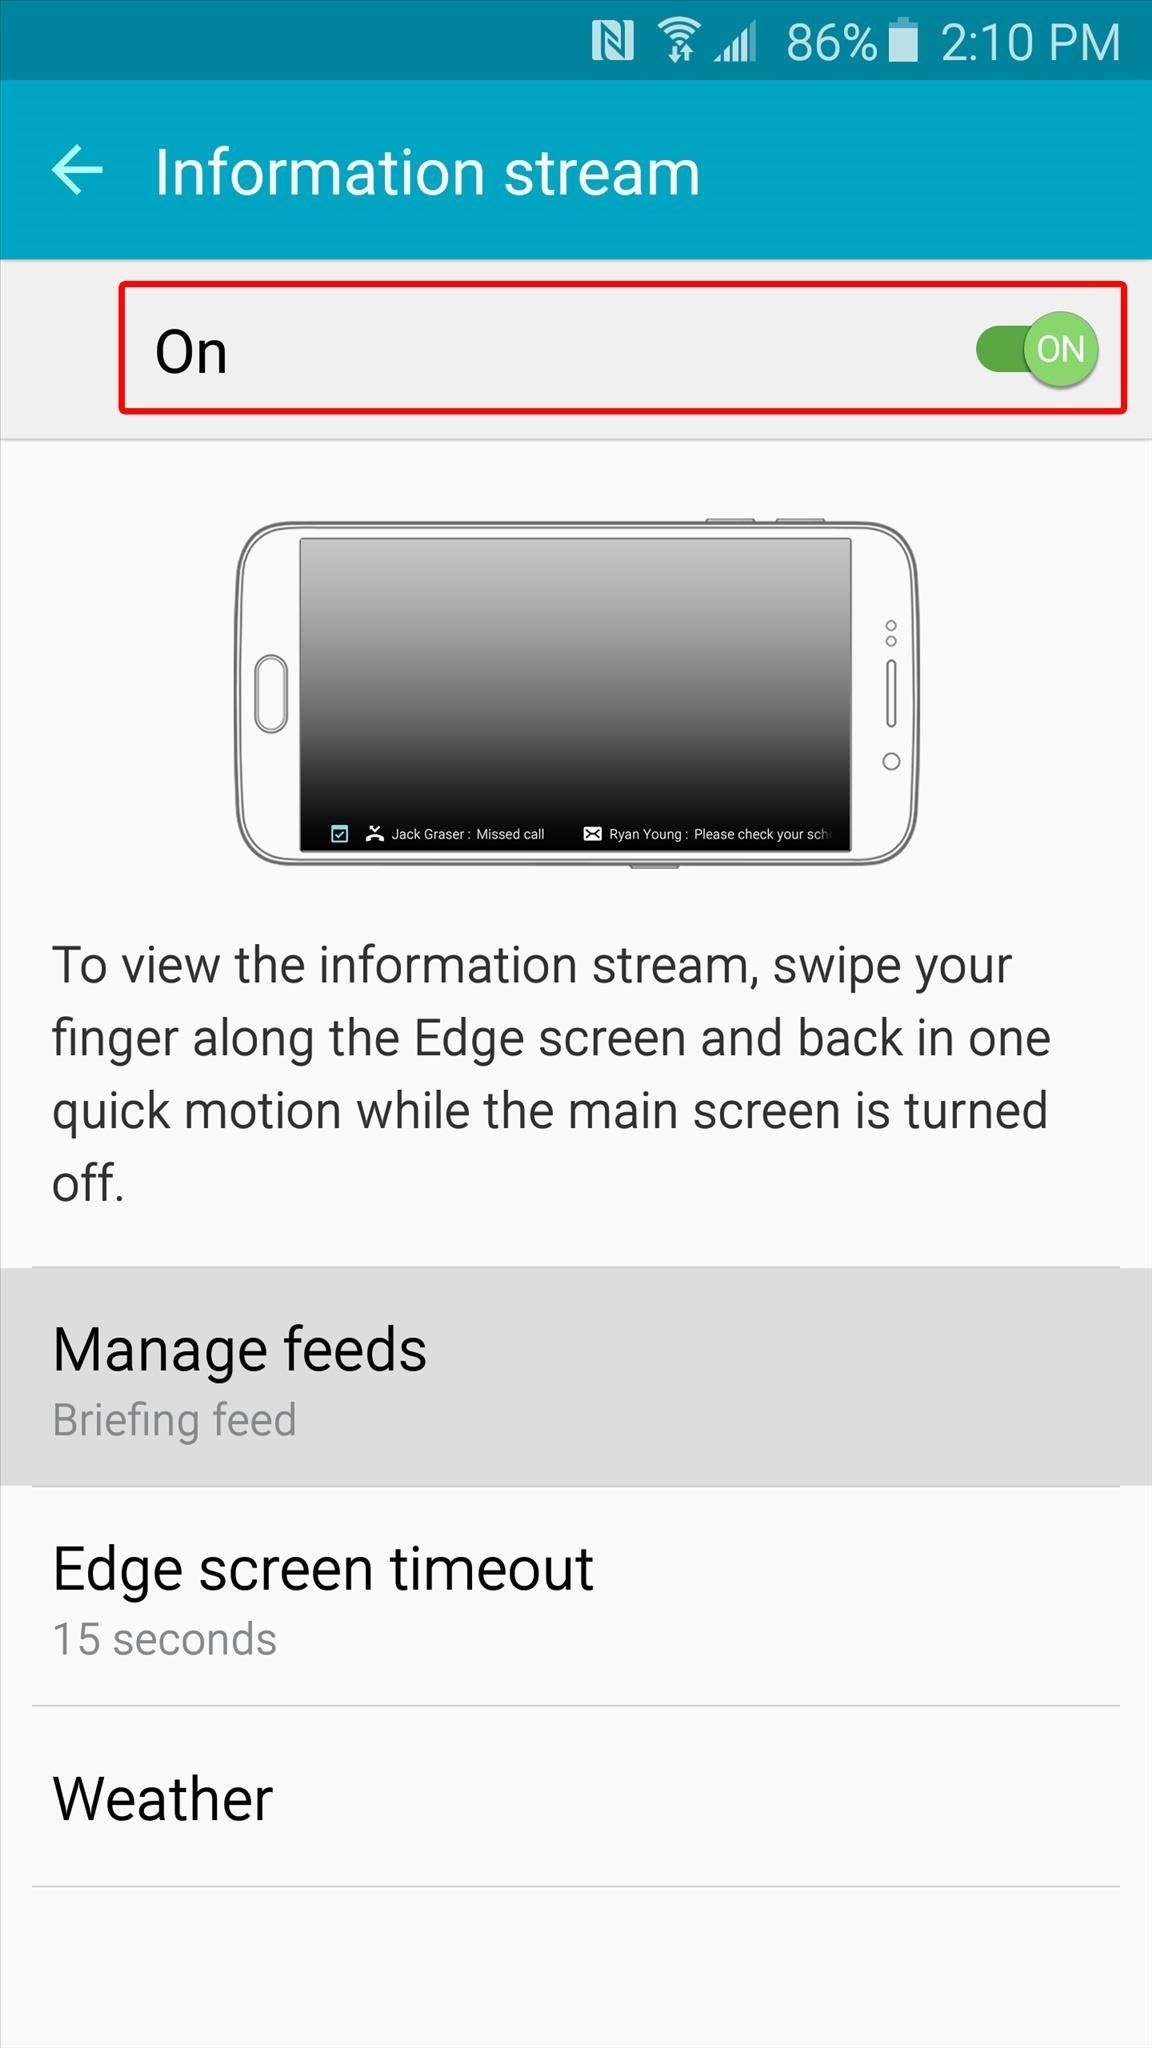 How To Launch Apps While The Screen Is Off On Your Galaxy S6 Edge Removing